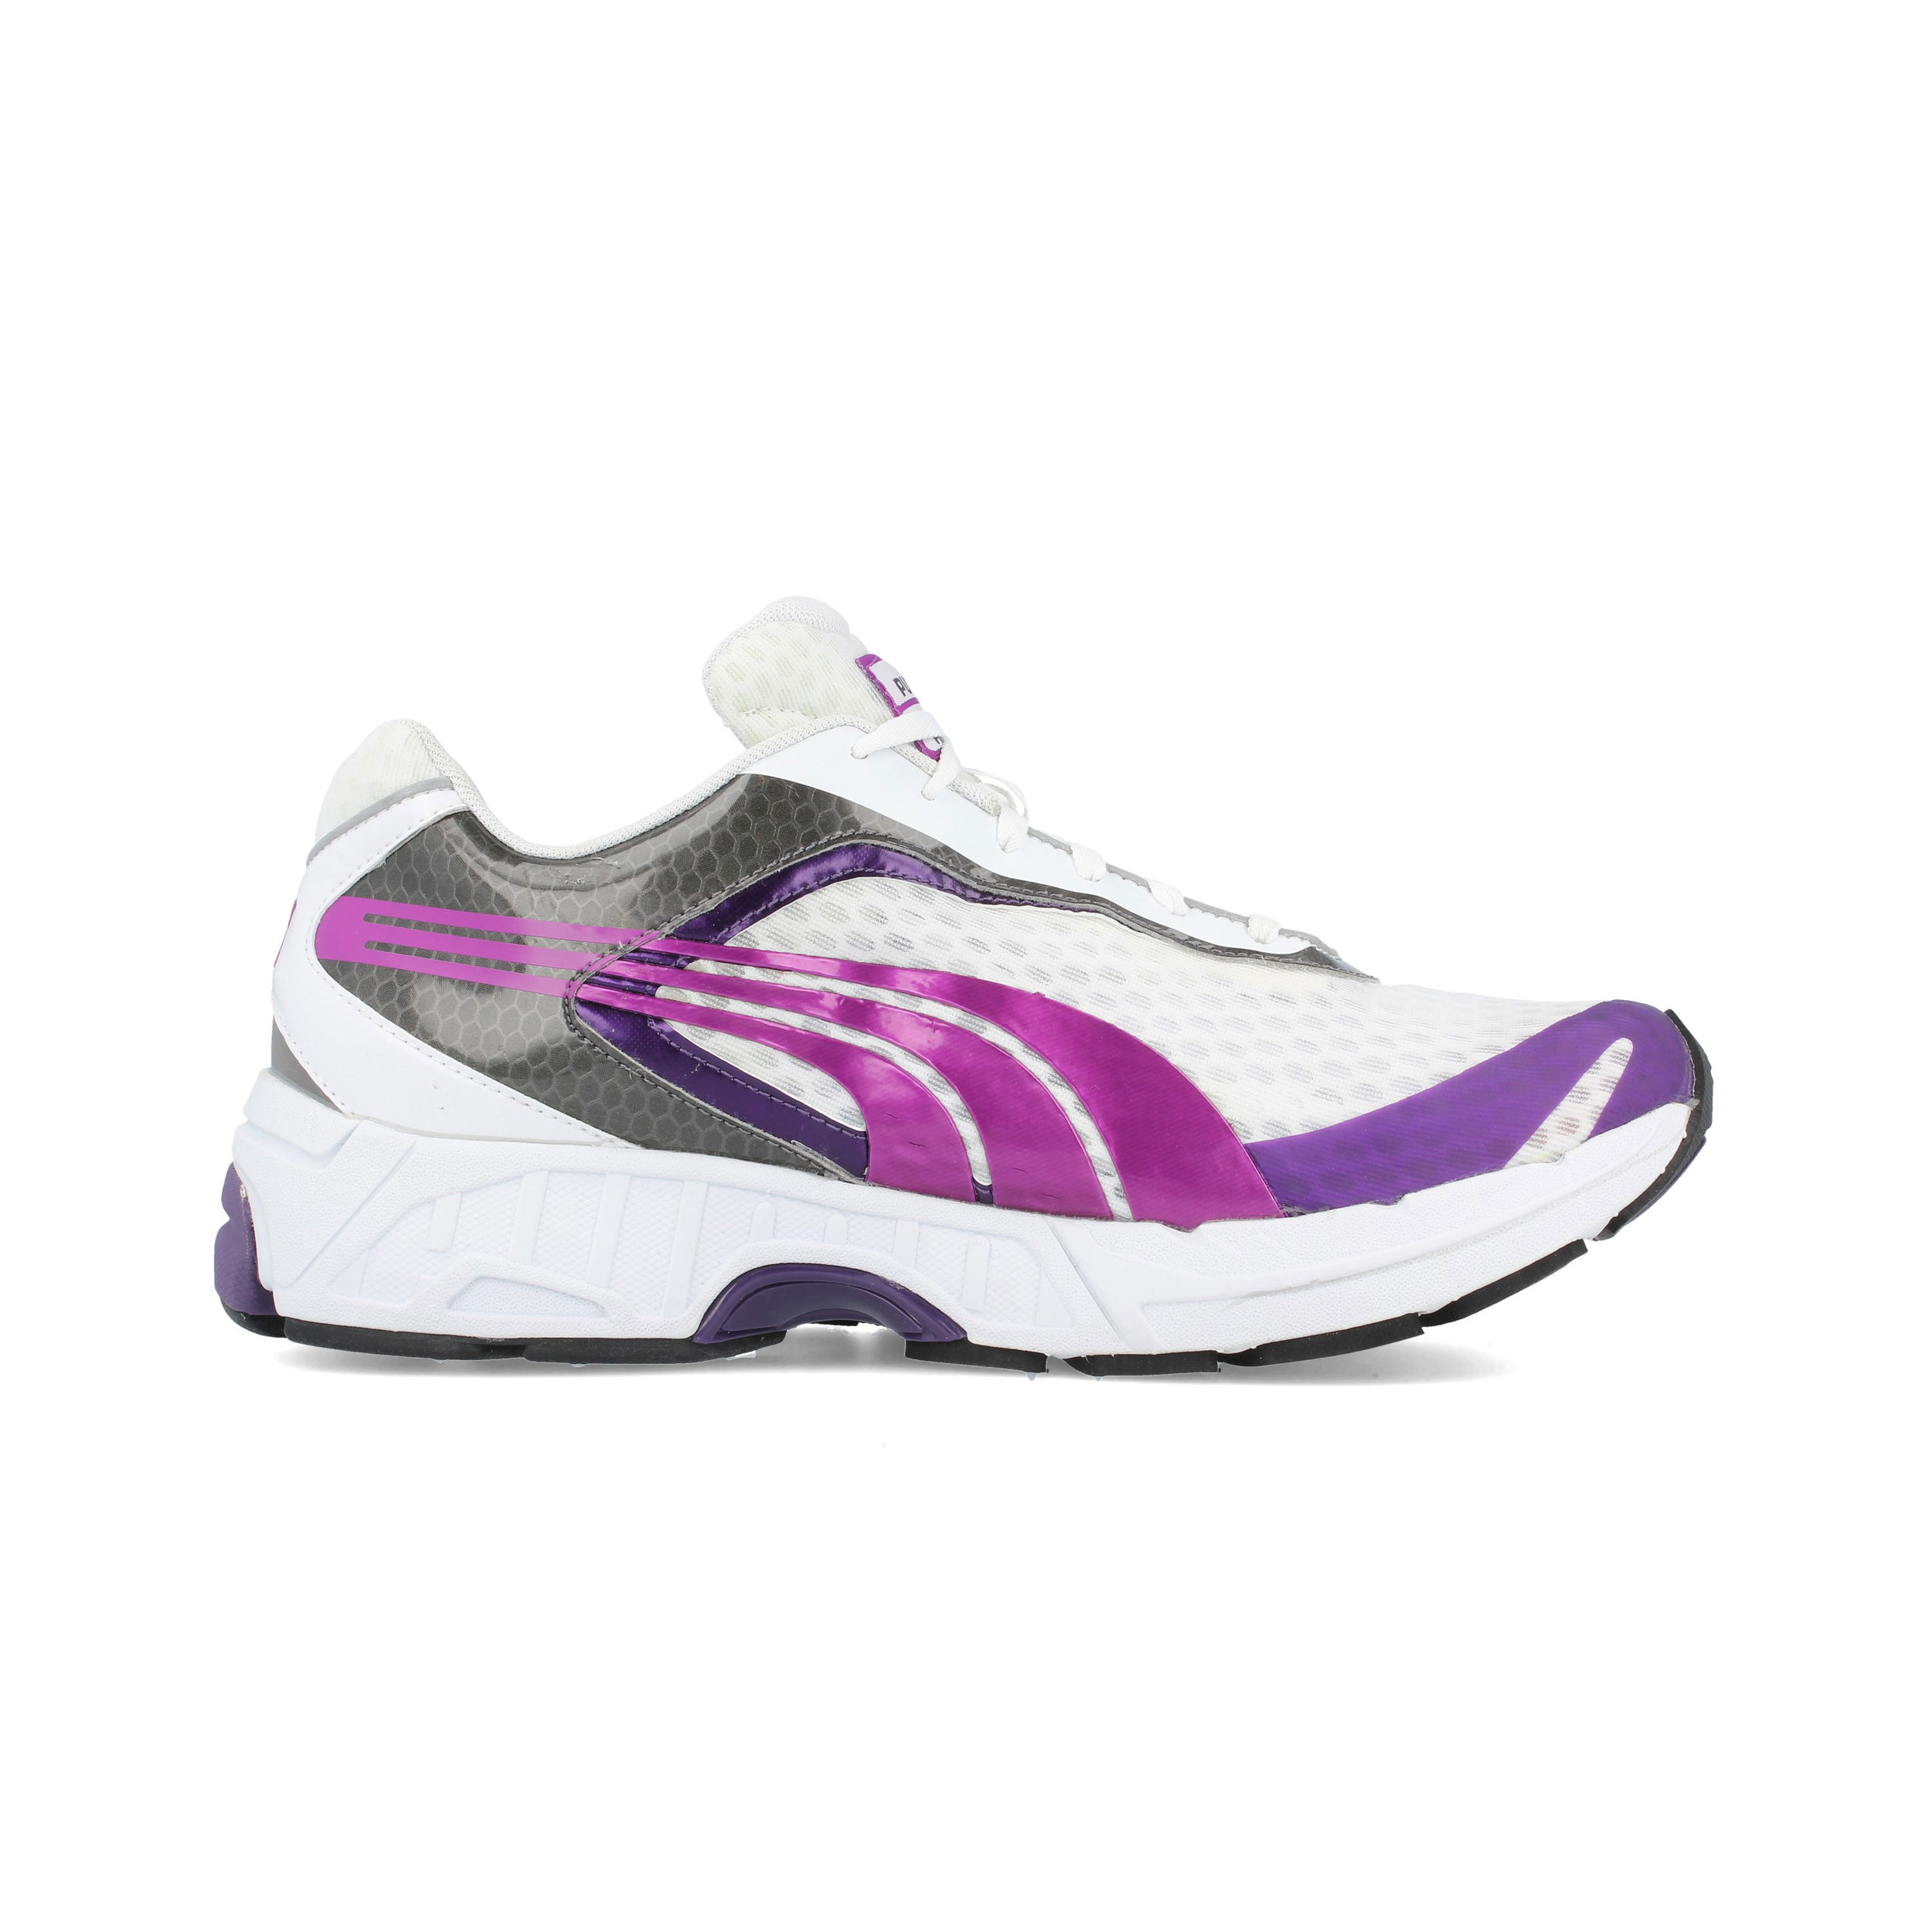 eaab8487860 Puma Womens Faas 700 Running Shoes Trainers Sneakers White Sports Breathable